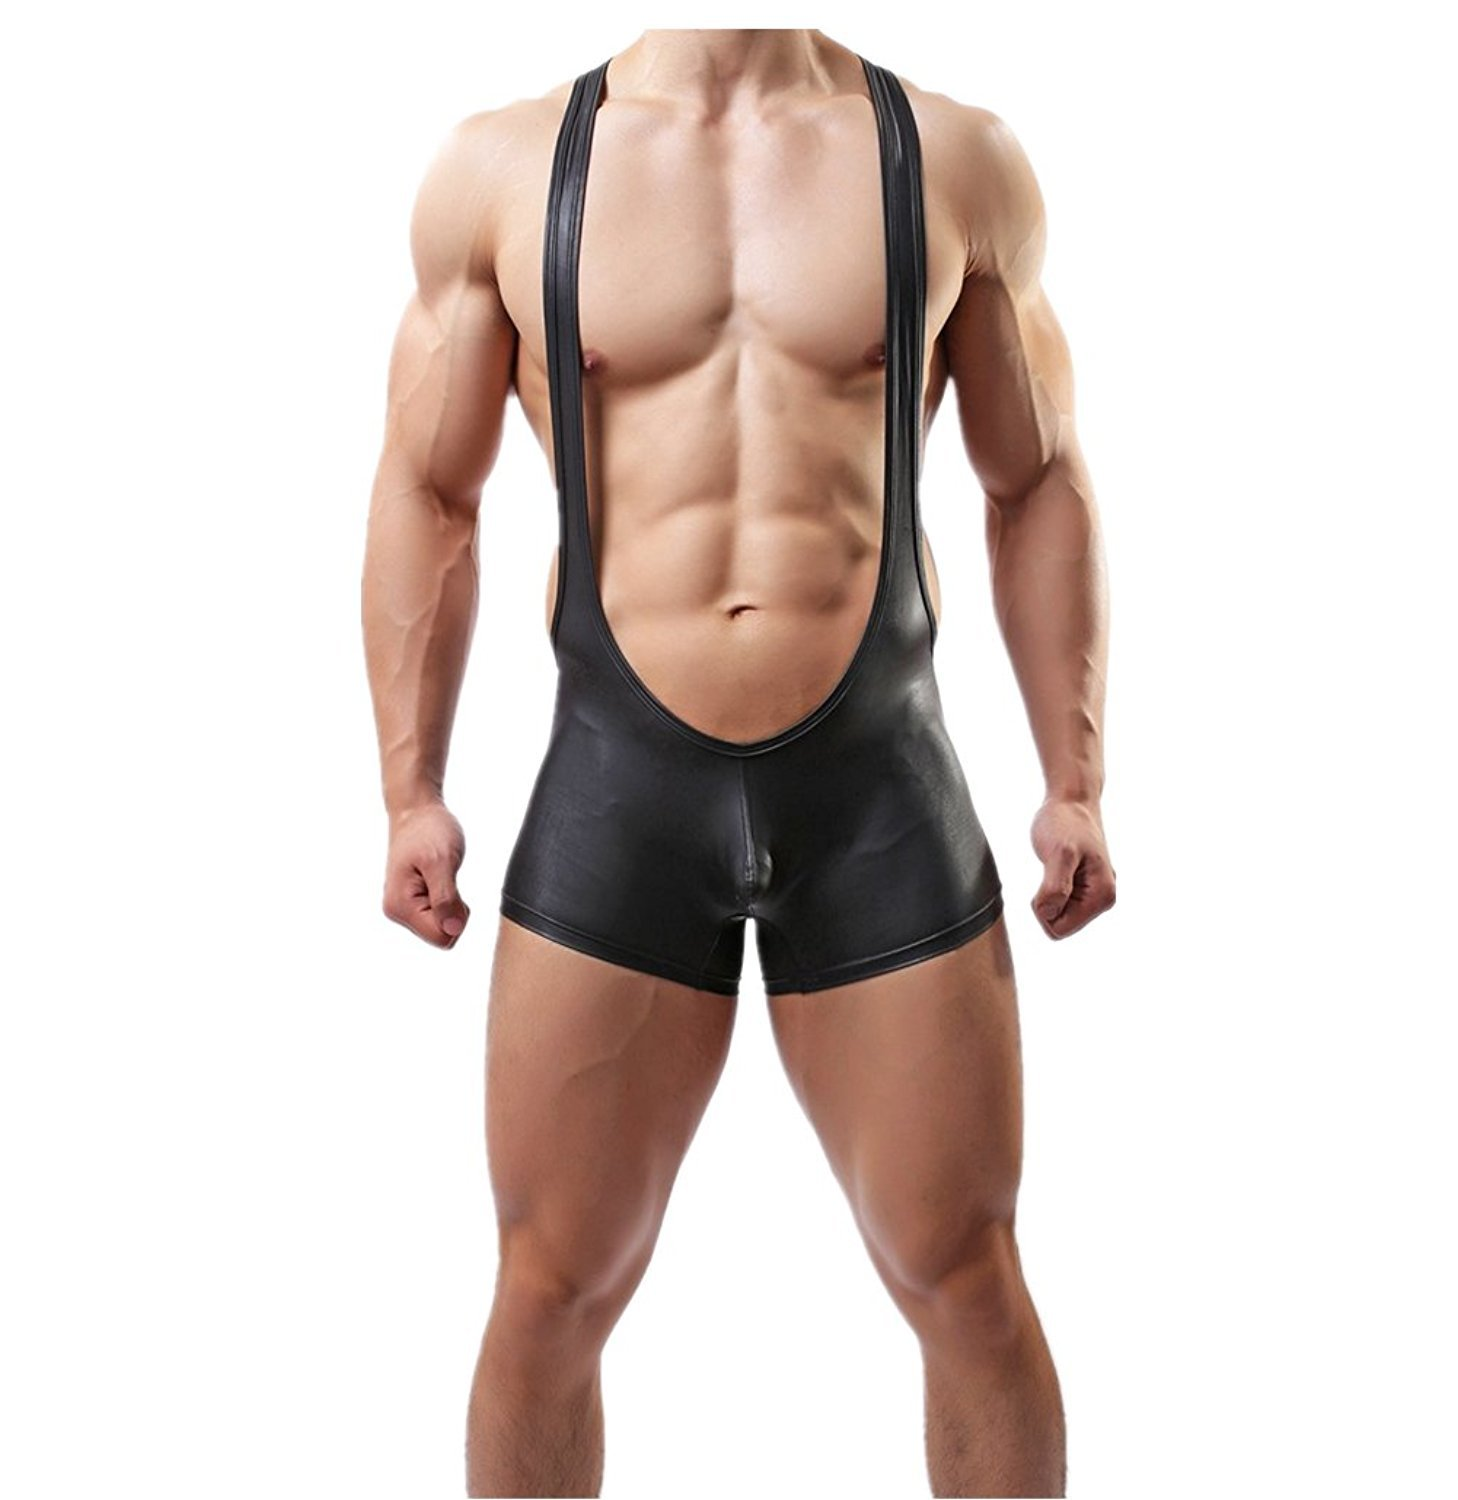 Iffee Men's Leather Look Wrestling Singlet Bulge Pouch Briefs Leotard Bodysuit